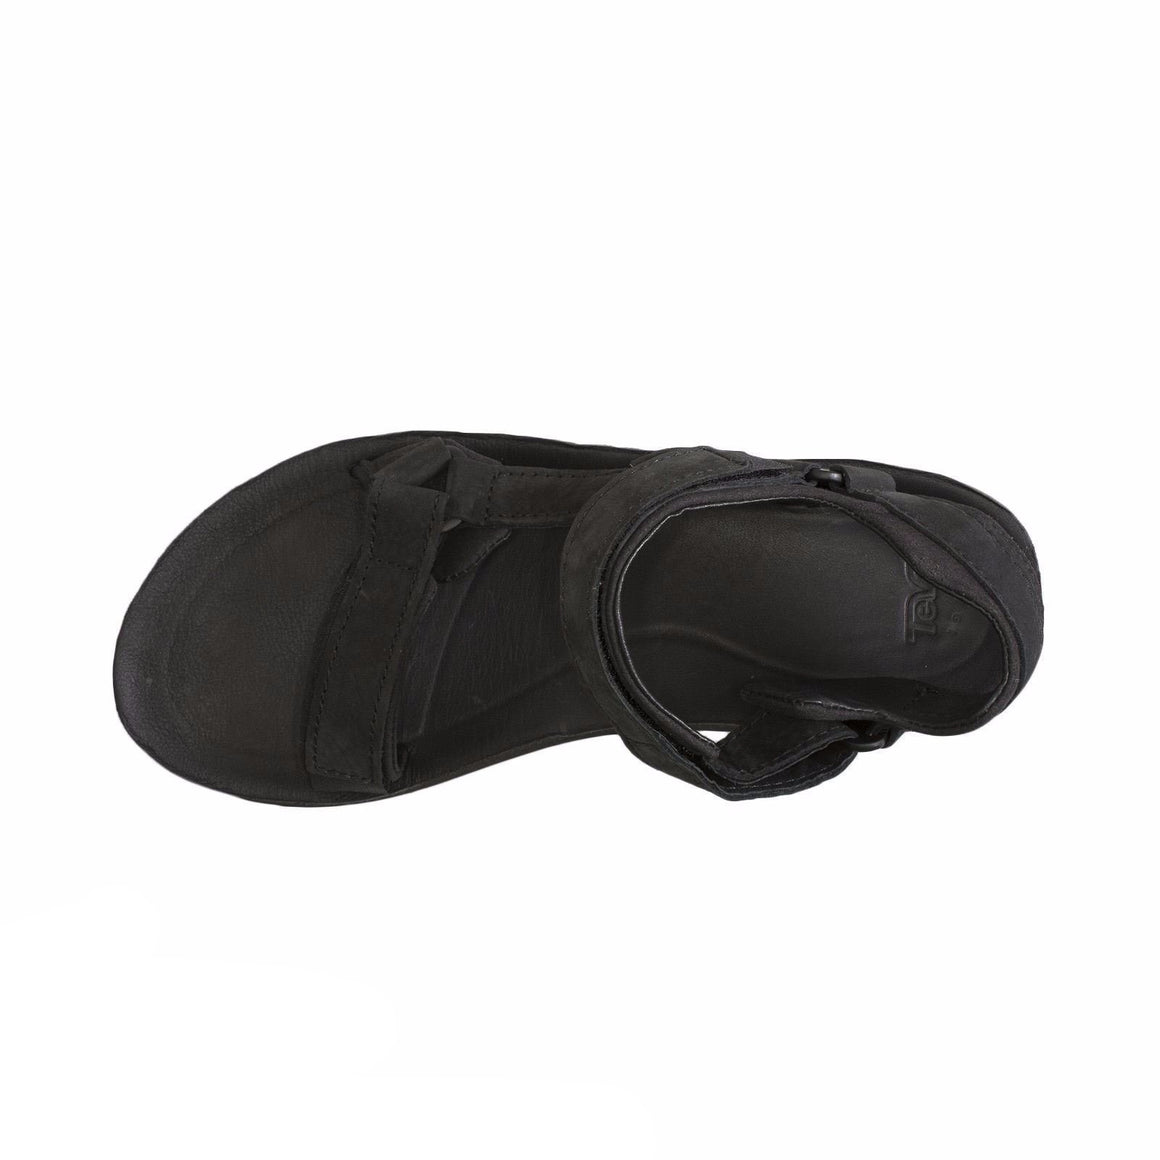 Teva Original Universal Premier Leather Black Sandals